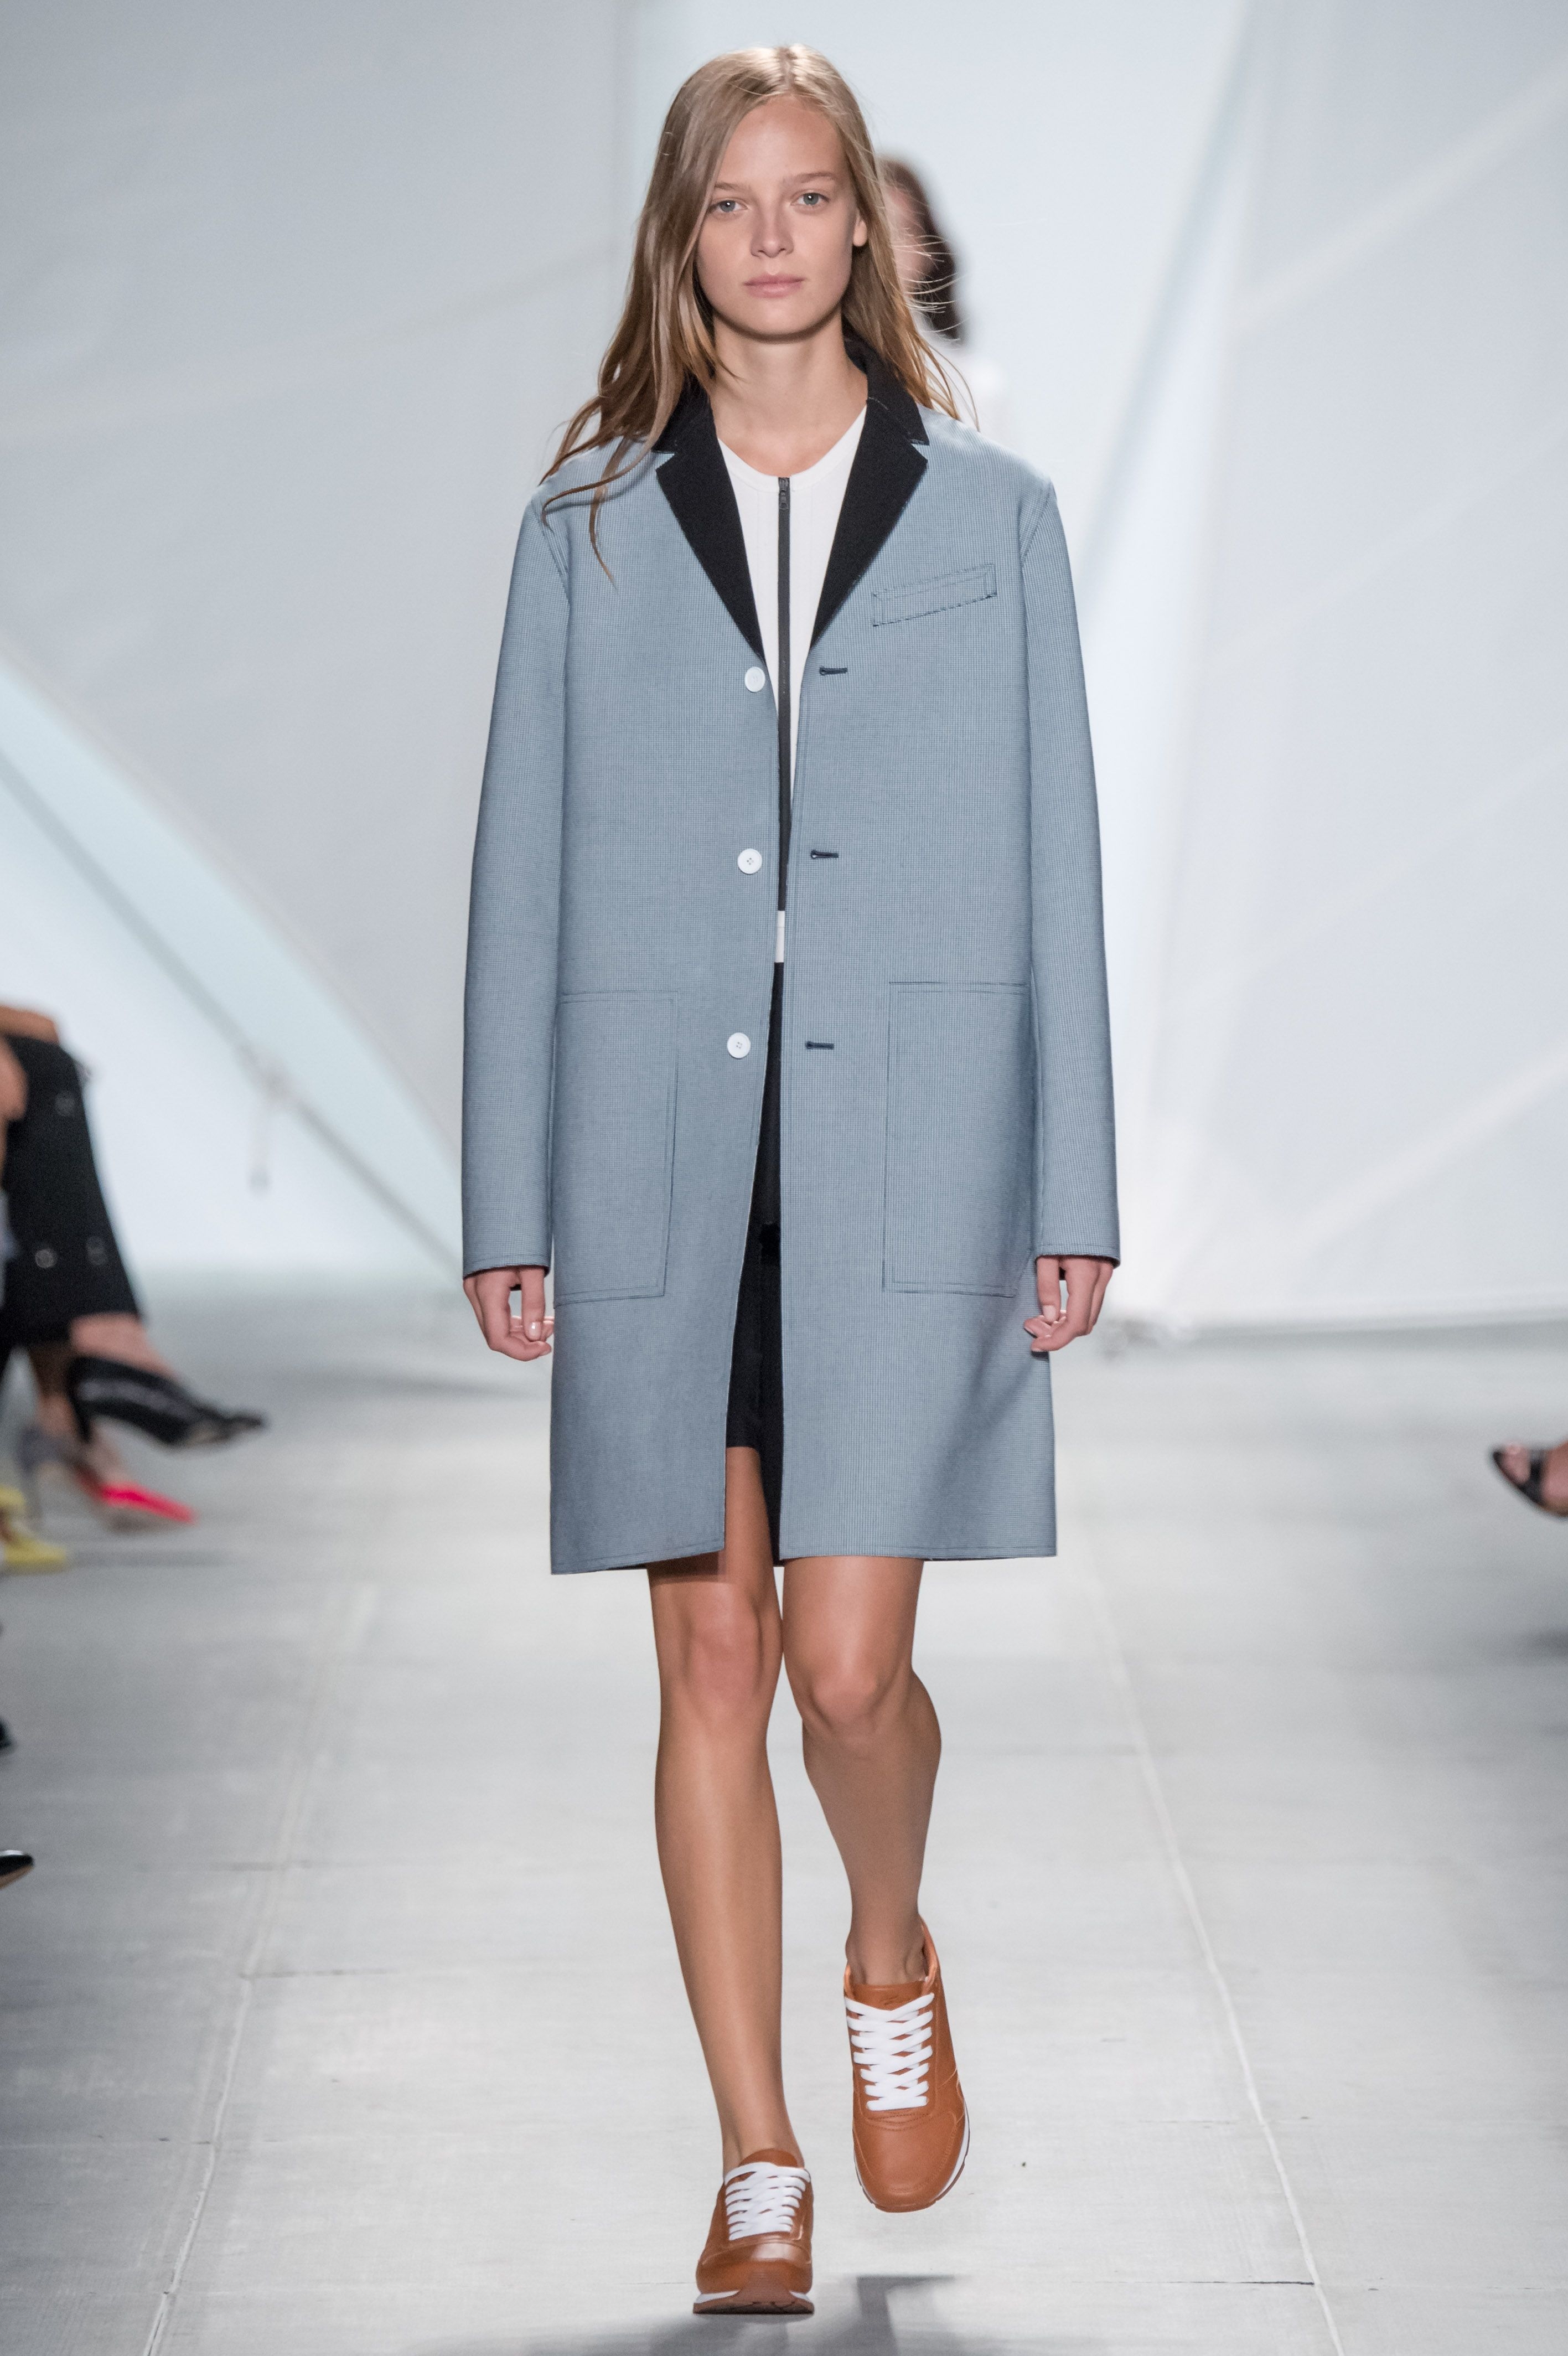 #Look from the #LacosteSS15 #Fashion #Show designed by #FelipeOliveiraBaptista - #NYFW